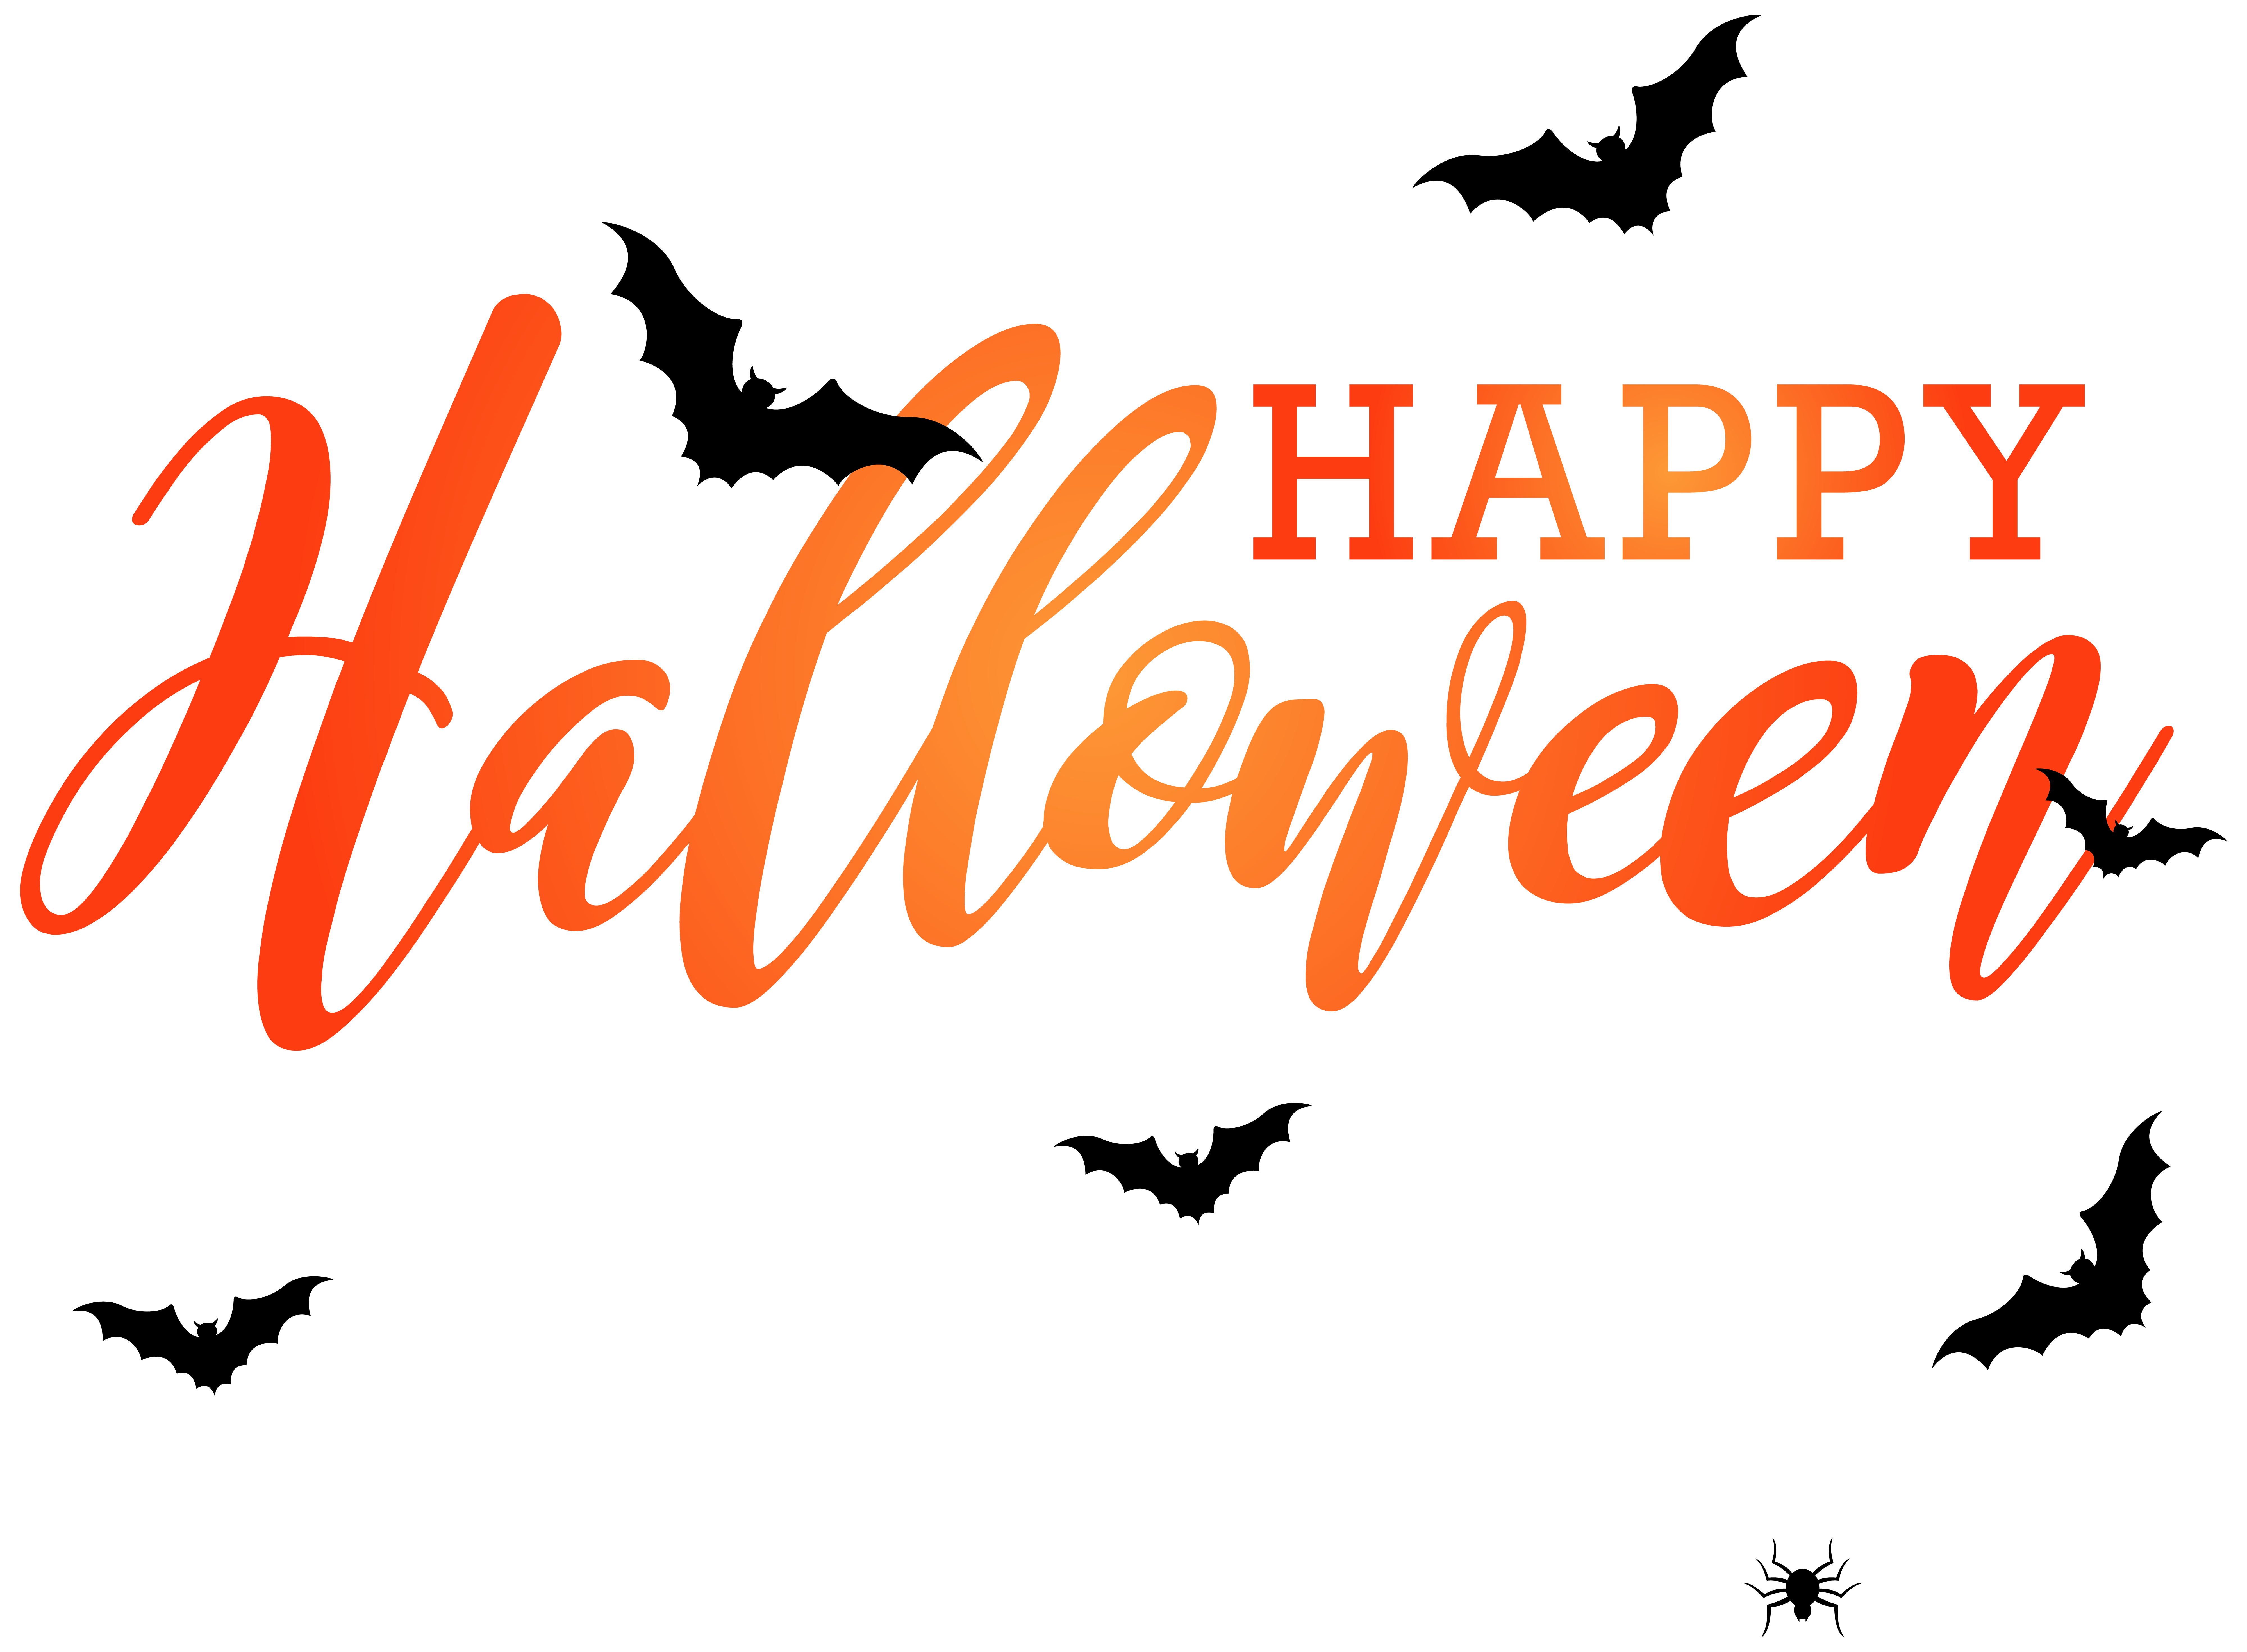 Happy Halloween With Bats Png Clip Art Image